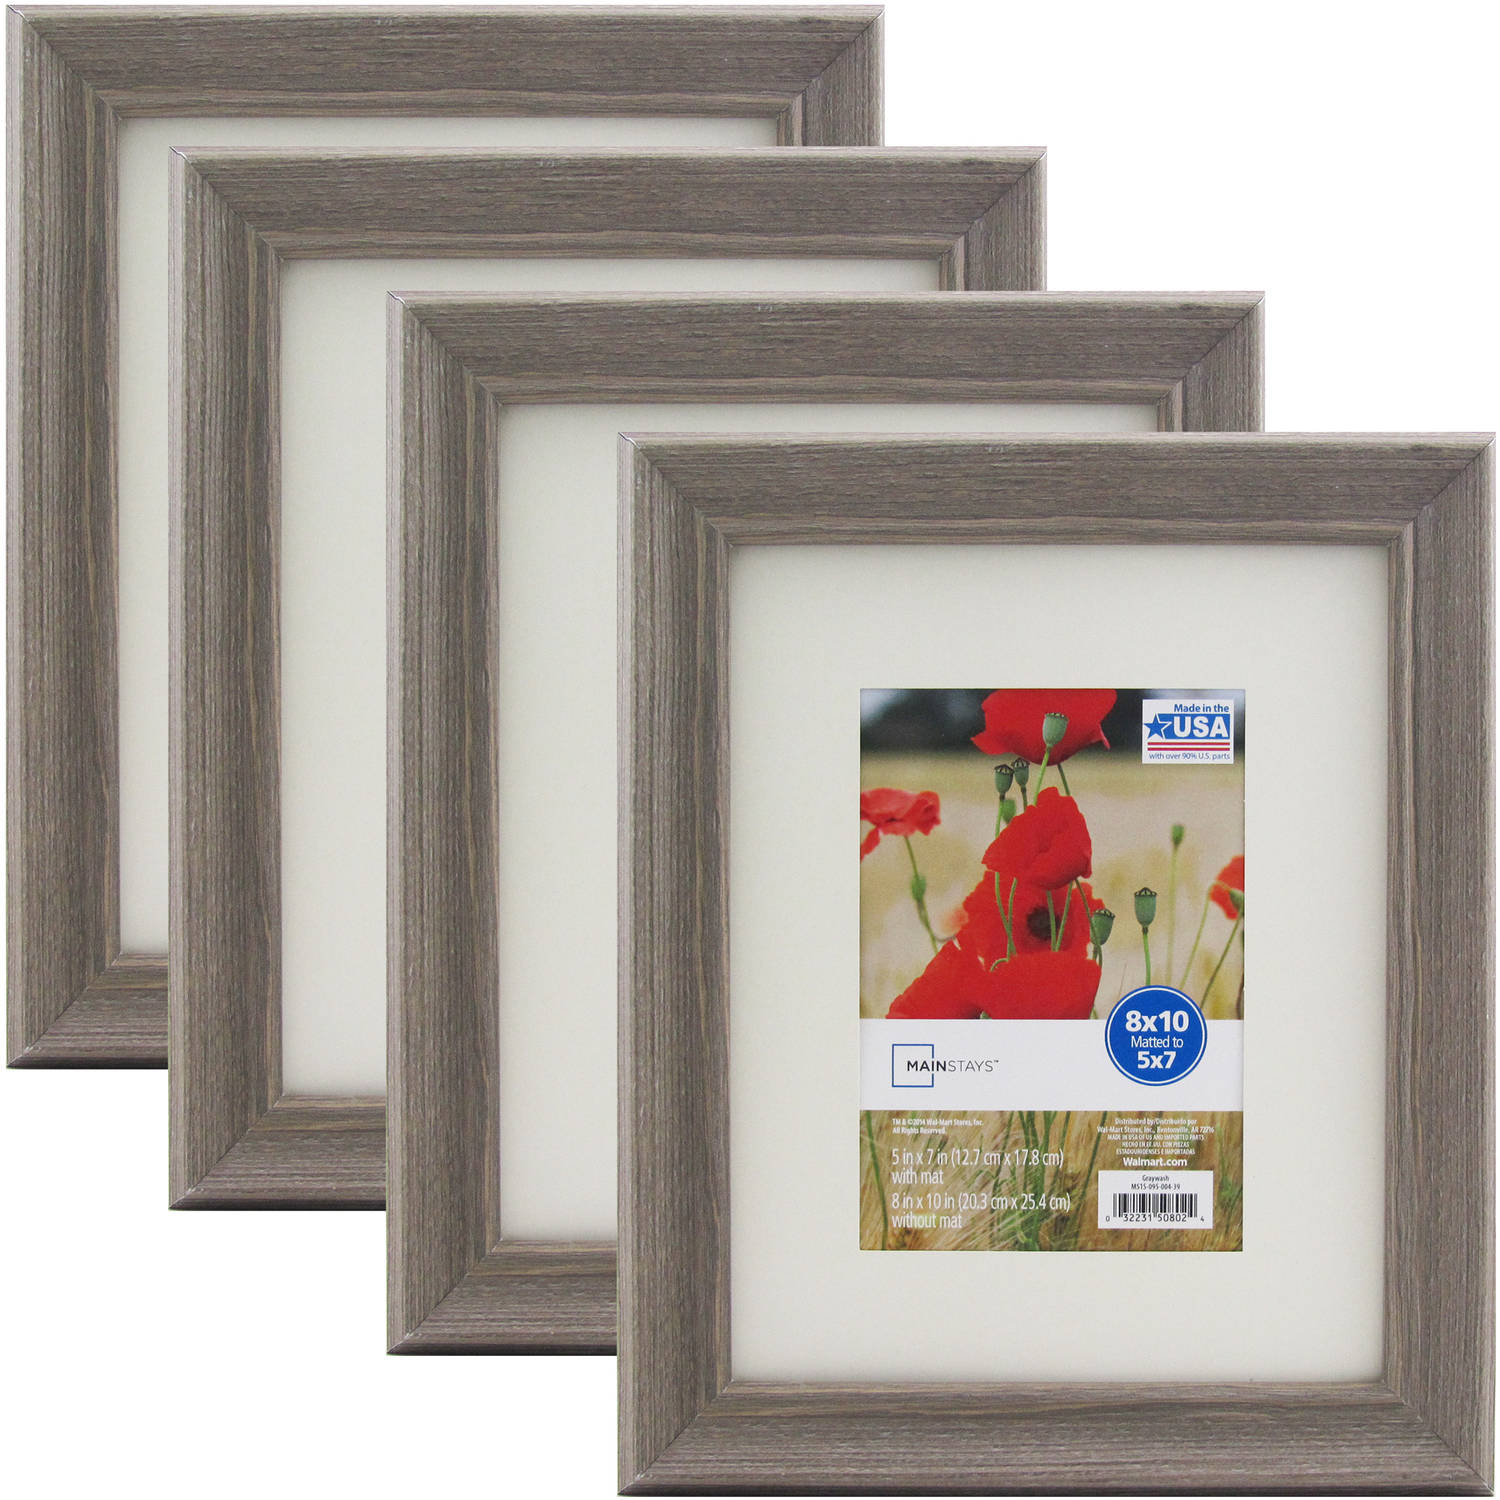 Wonderful Walmart Frames Gallery